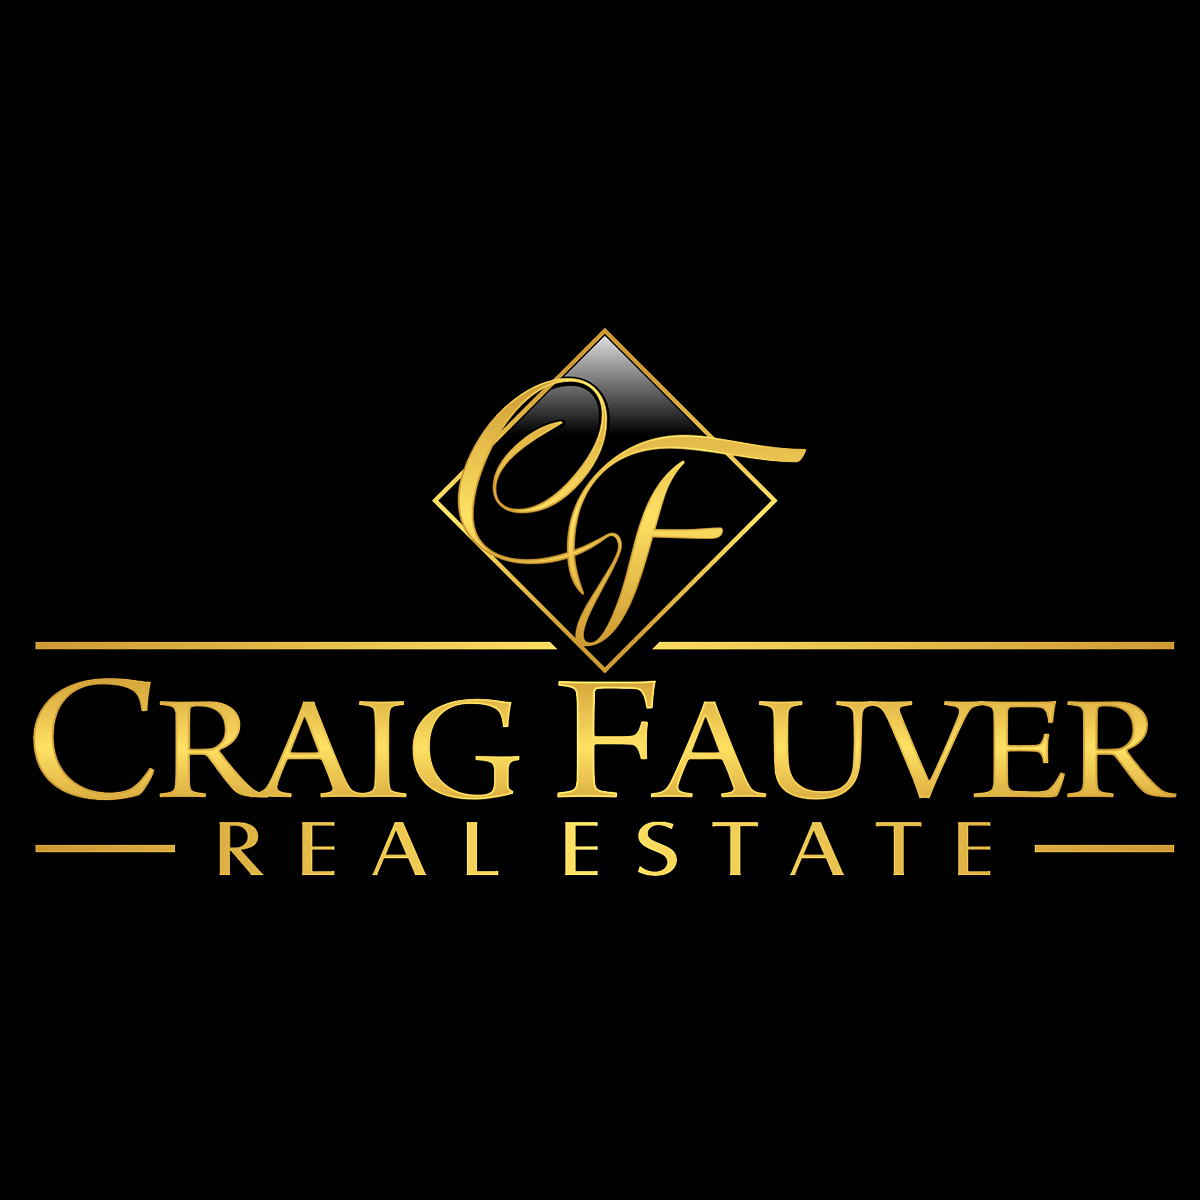 Craig Fauver Real Estate logo